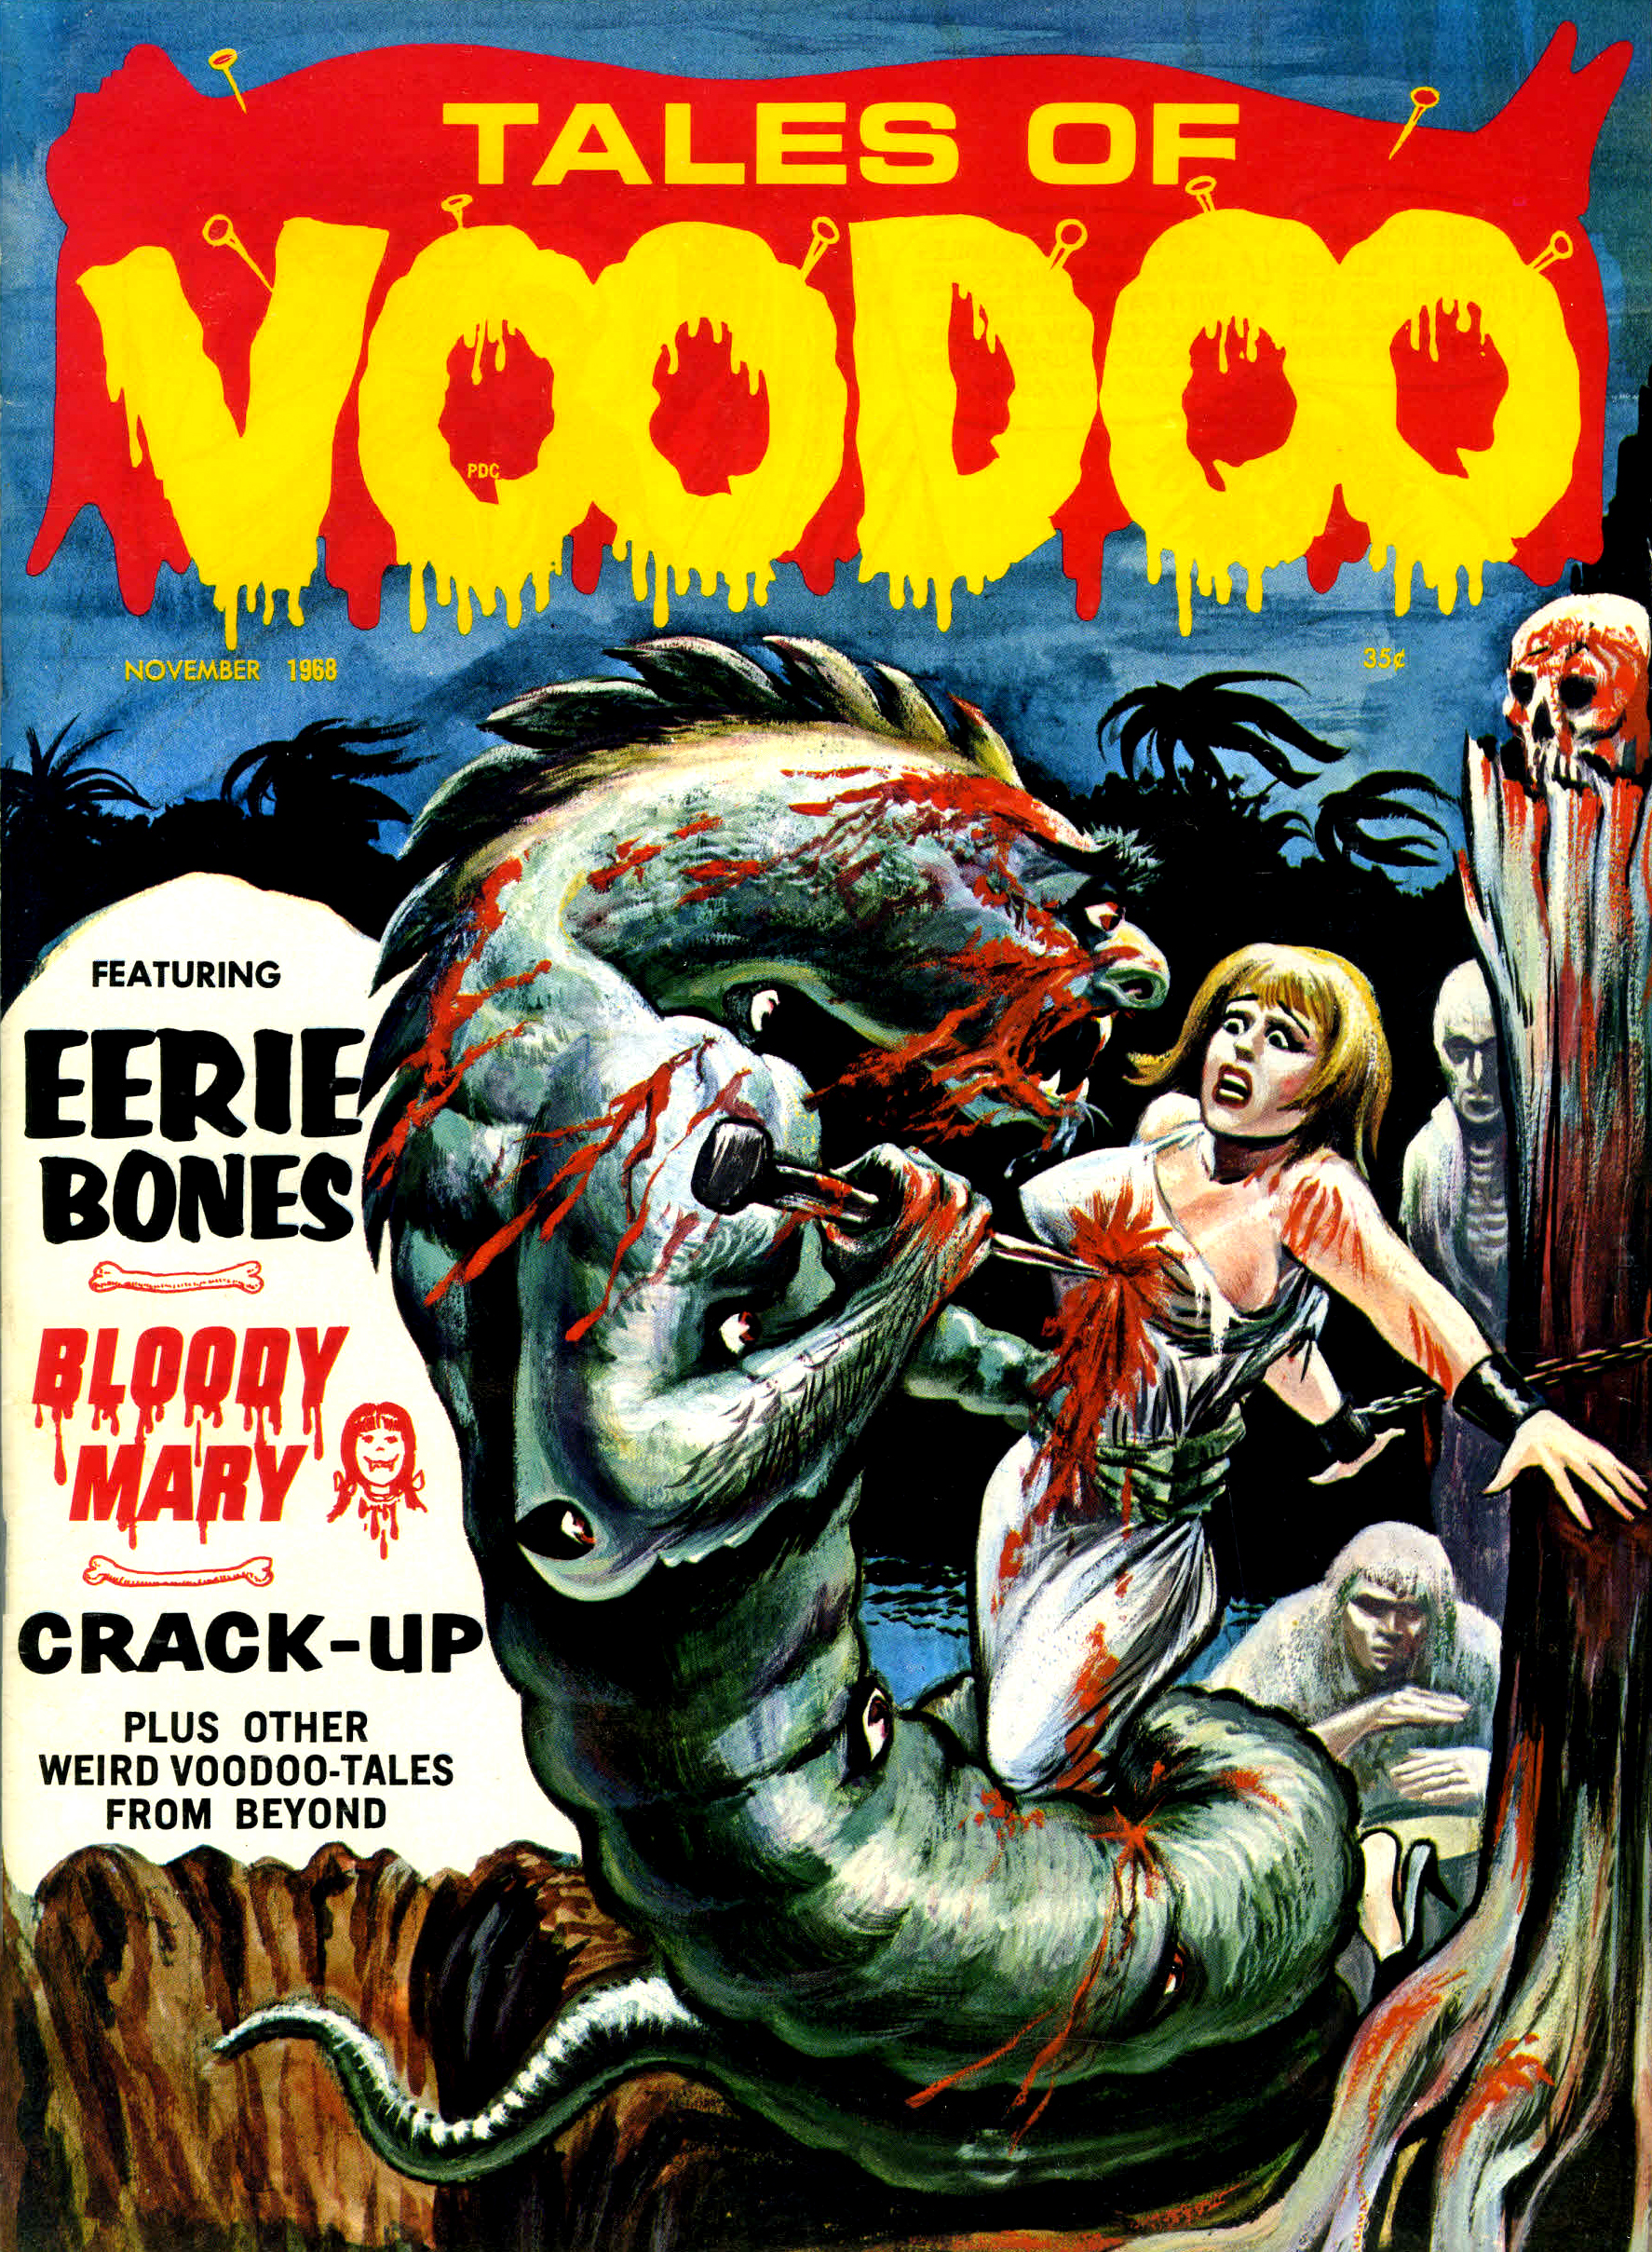 Tales of Voodoo Vol. 1 #11 (Eerie Publications, 1968)